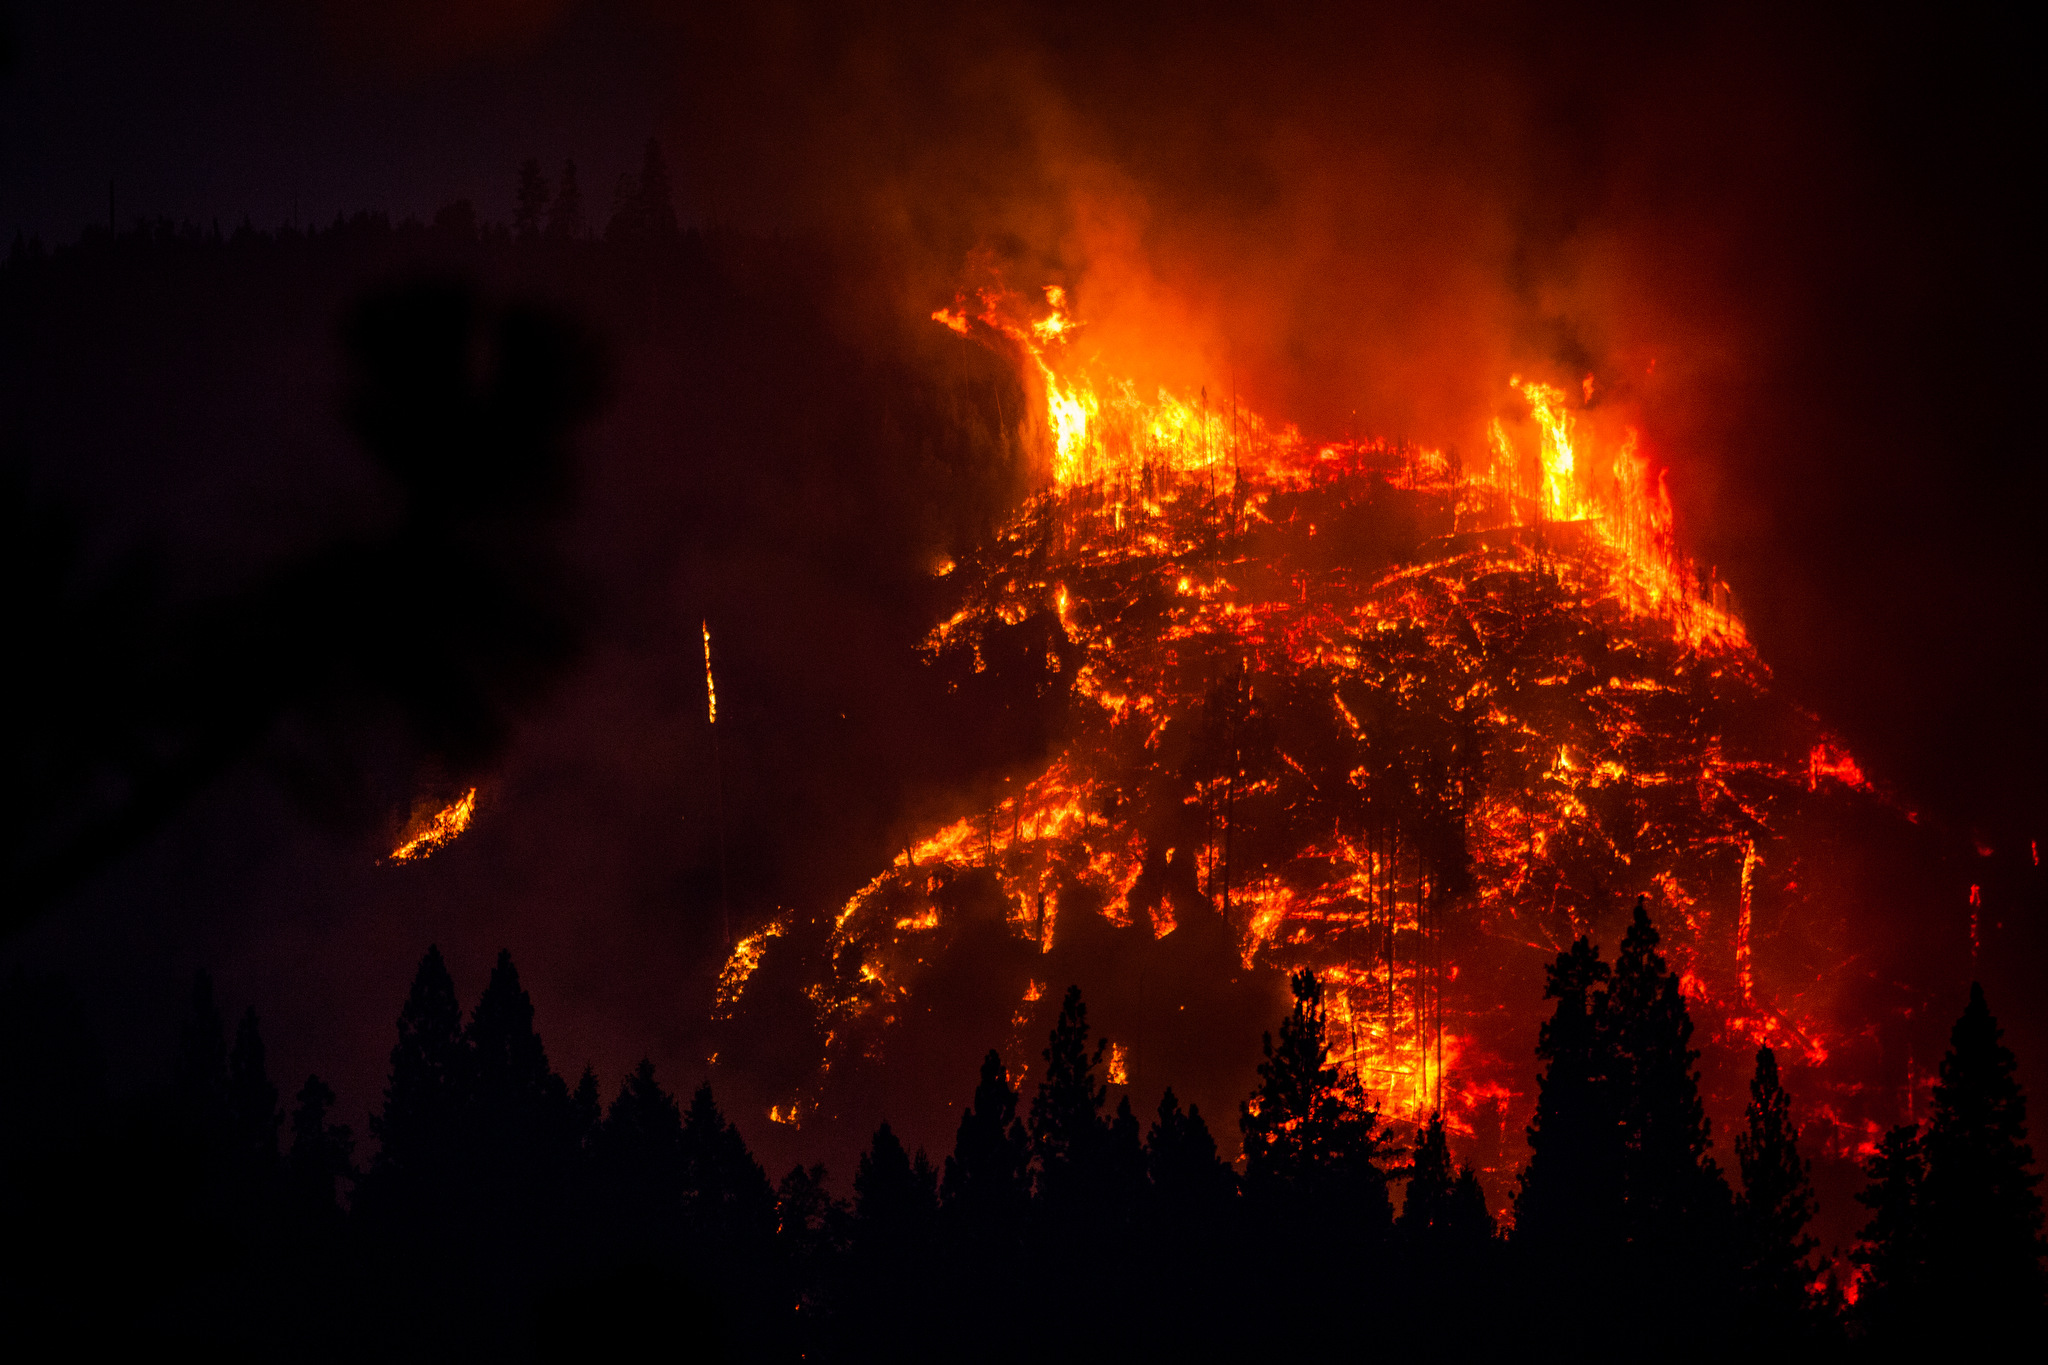 The Rim Fire burns near Buck Meadows, California, August 24, 2013. The Rim Fire burned 257,314 acres and is the third largest wildfire in California history.